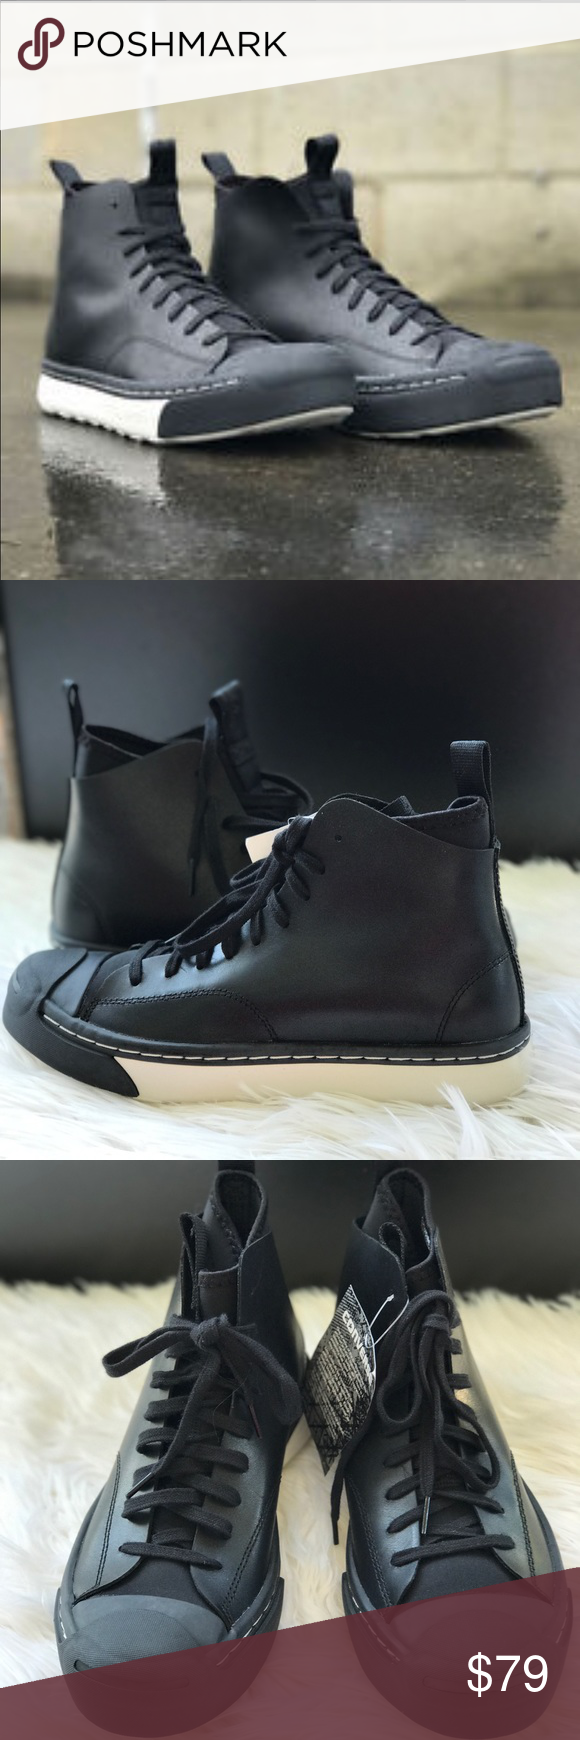 7313f1fd9ce8 Converse JP-Series Sneaker Boot HI Black WMNS Brand new with box